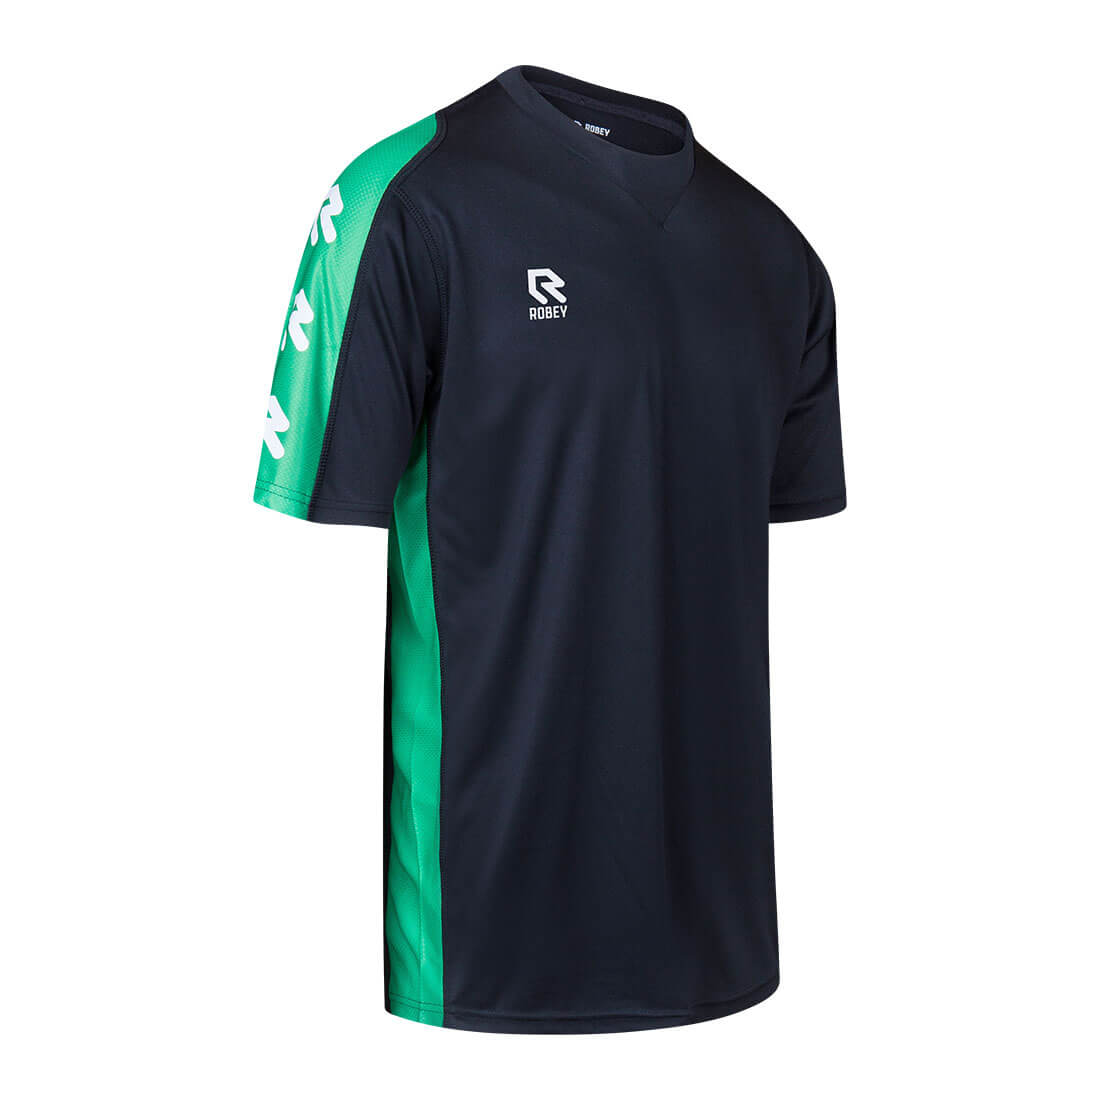 Robey Performance Shirt - Black Green